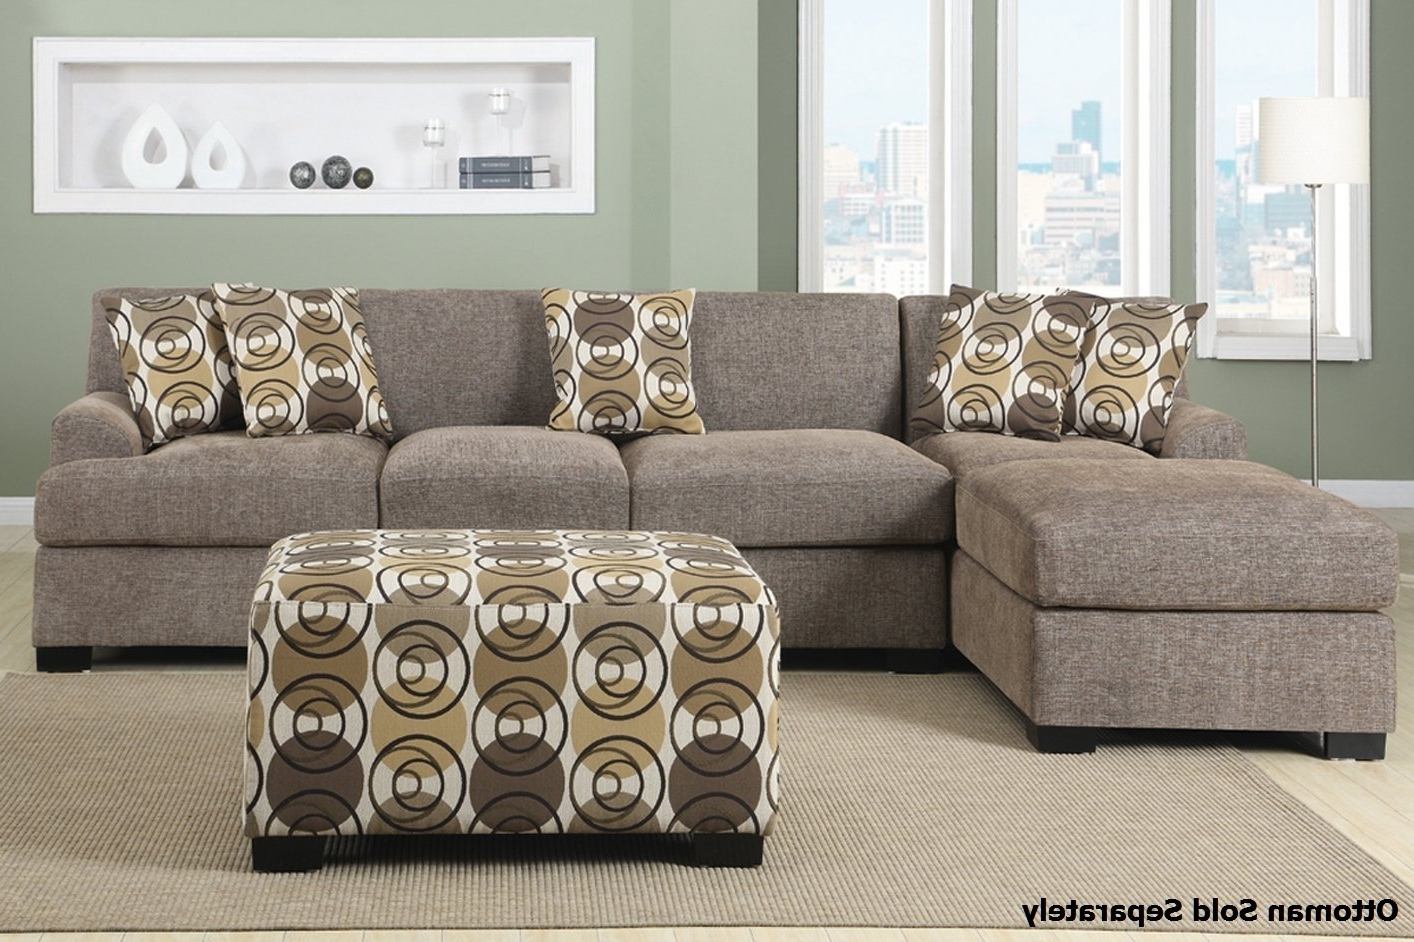 Montreal Iii Beige Fabric Sectional Sofa – Steal A Sofa Furniture Within Best And Newest Beige Sectional Sofas (View 5 of 20)